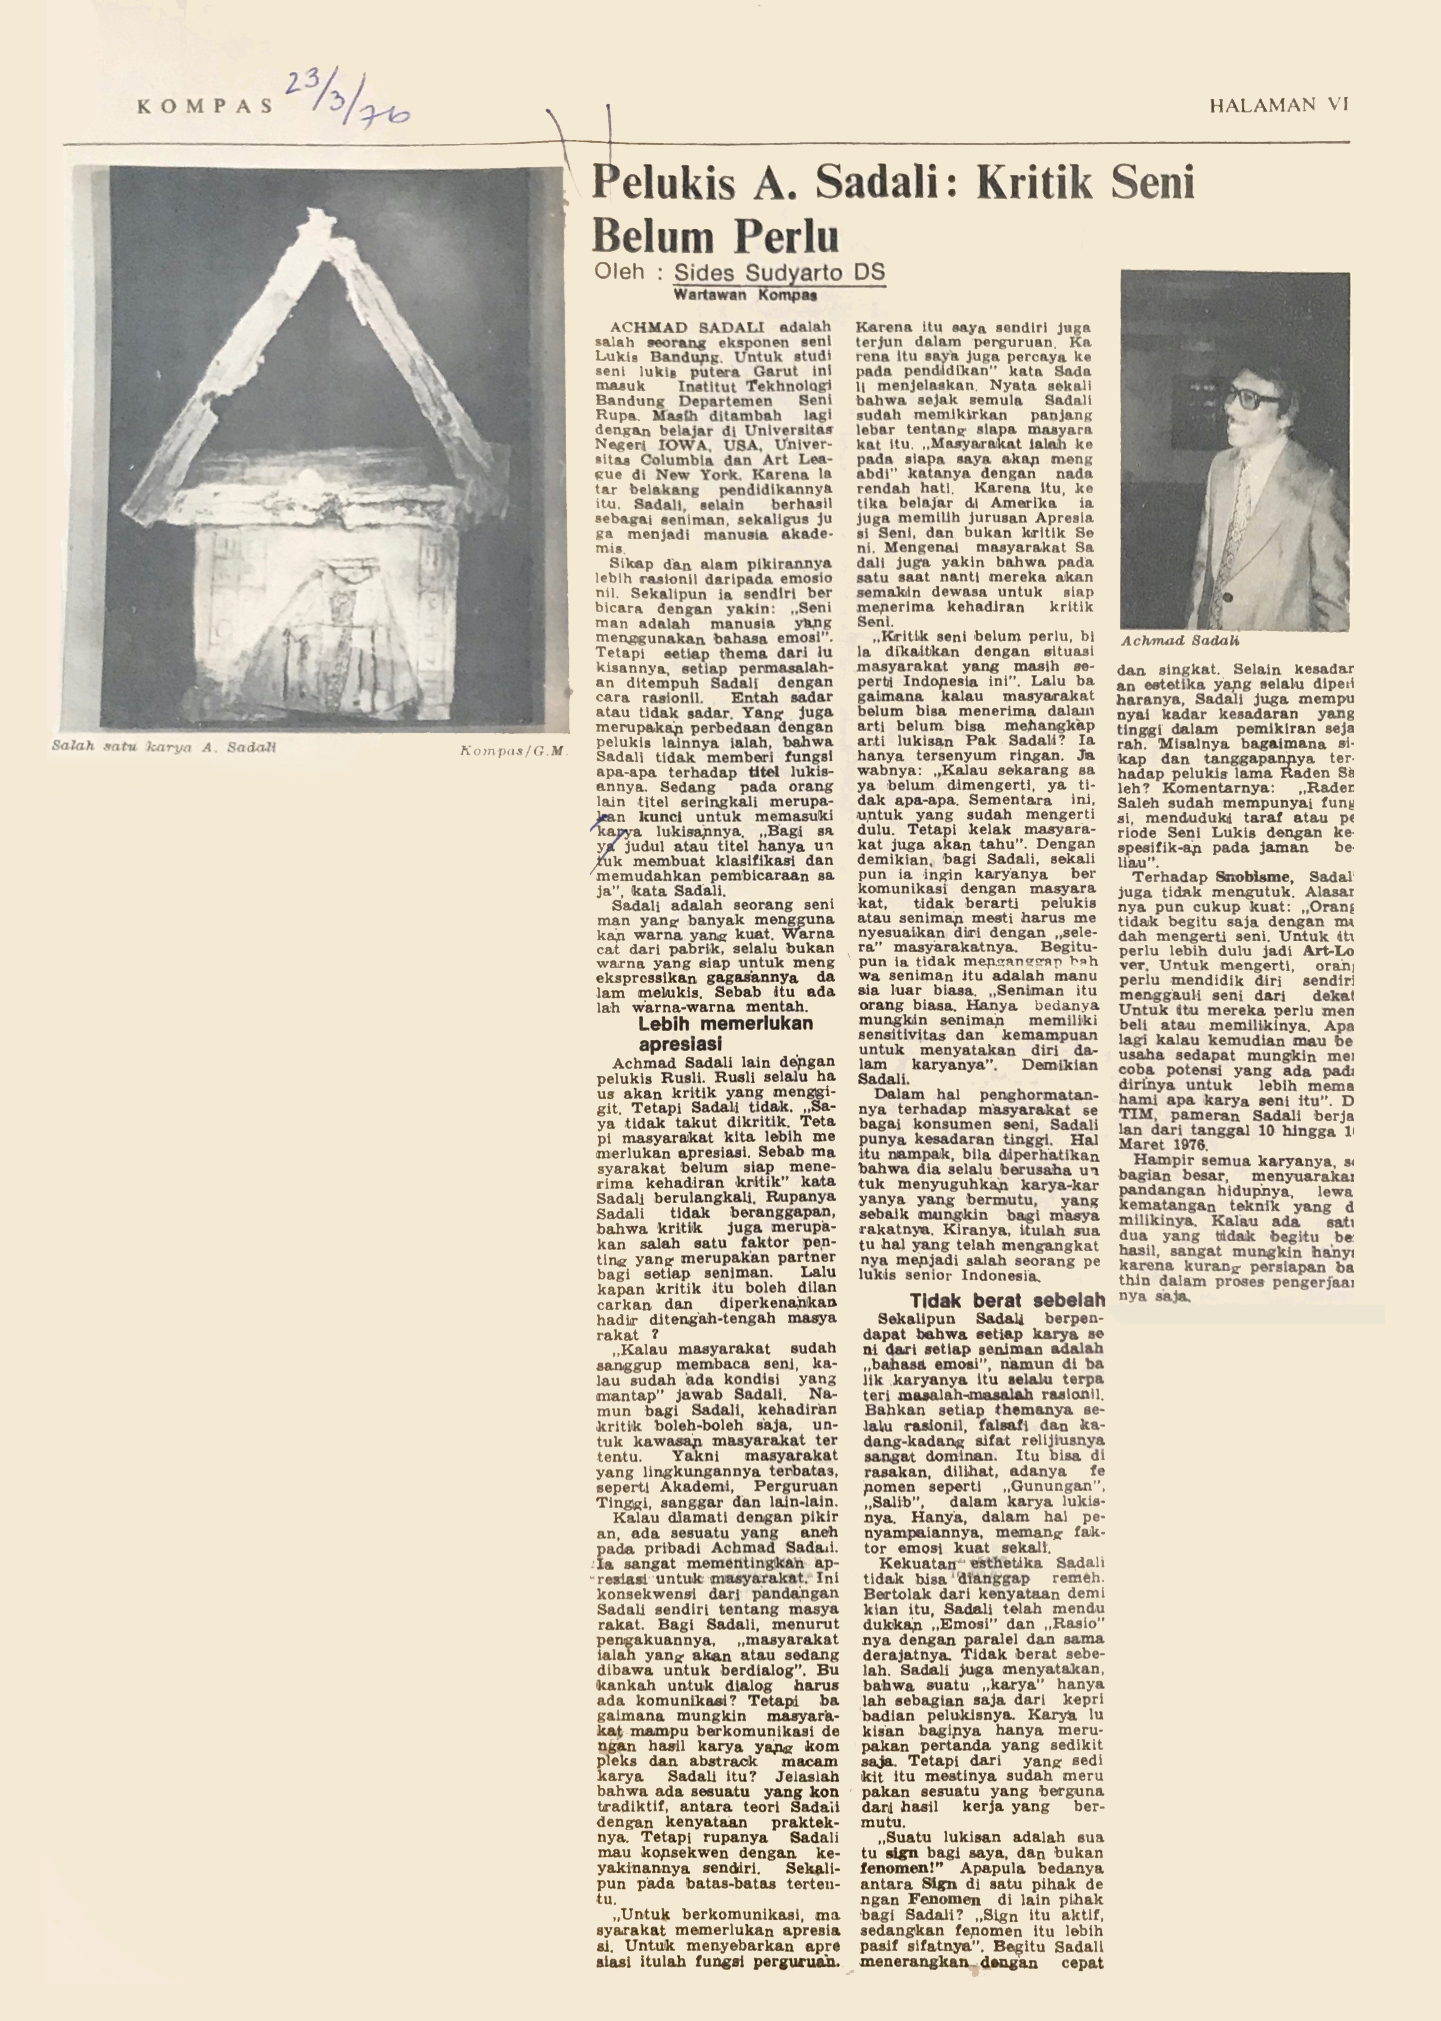 Kompas newspaper article about Ahmad Sadali, featuring  Gunungan  as representative image, a week after the TIM exhibition. Dated 23 March 2976